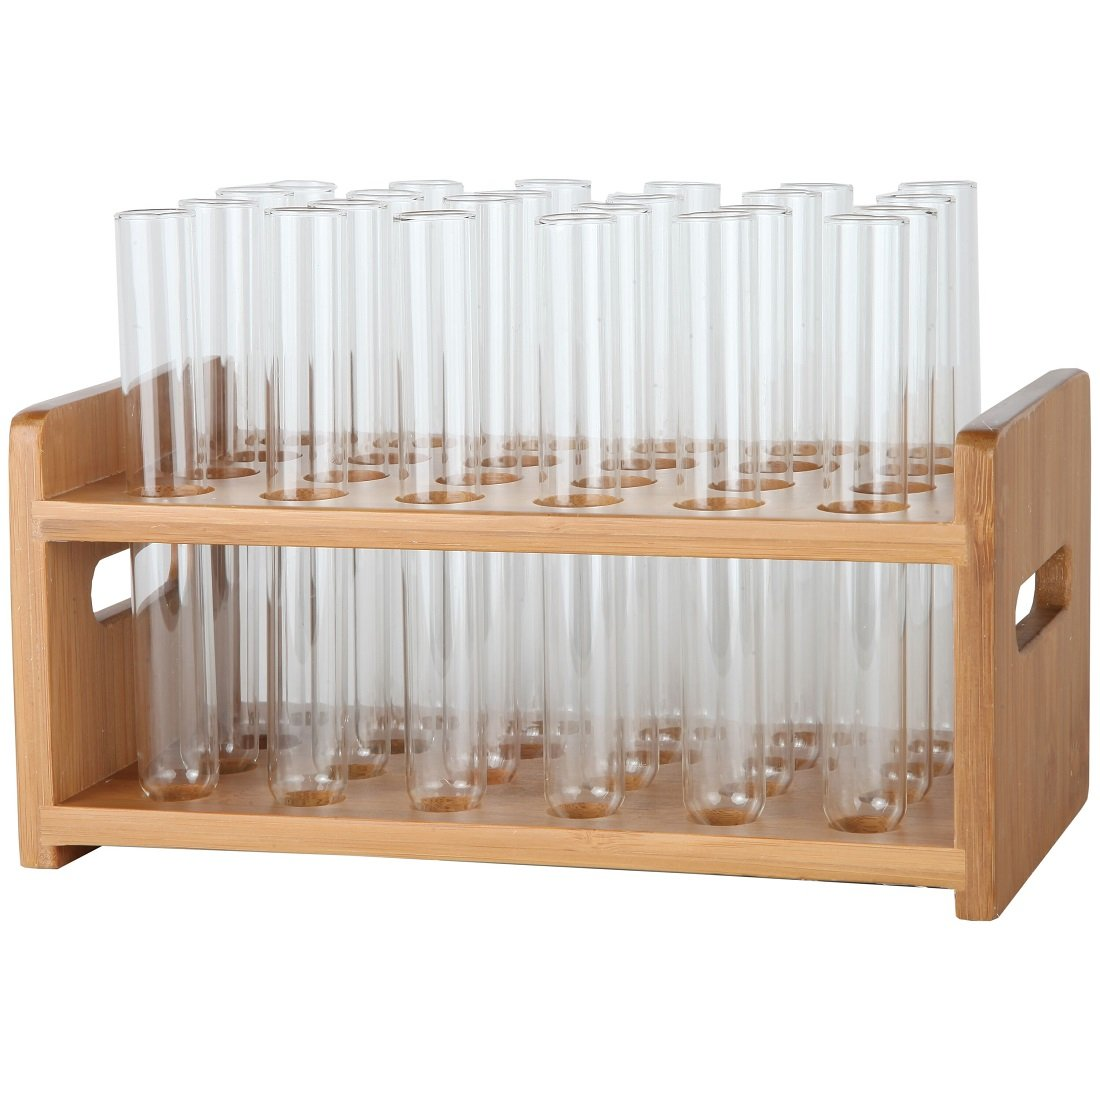 Lily's Home Bamboo Test Tube Vial Shot Glasses Holder Rack, Made from Easy to Clean Bamboo with Built-in Handle, Rack Only, Glass Tubes NOT Included, 24 Tube Capacity (7/8'' (22mm') Holes)